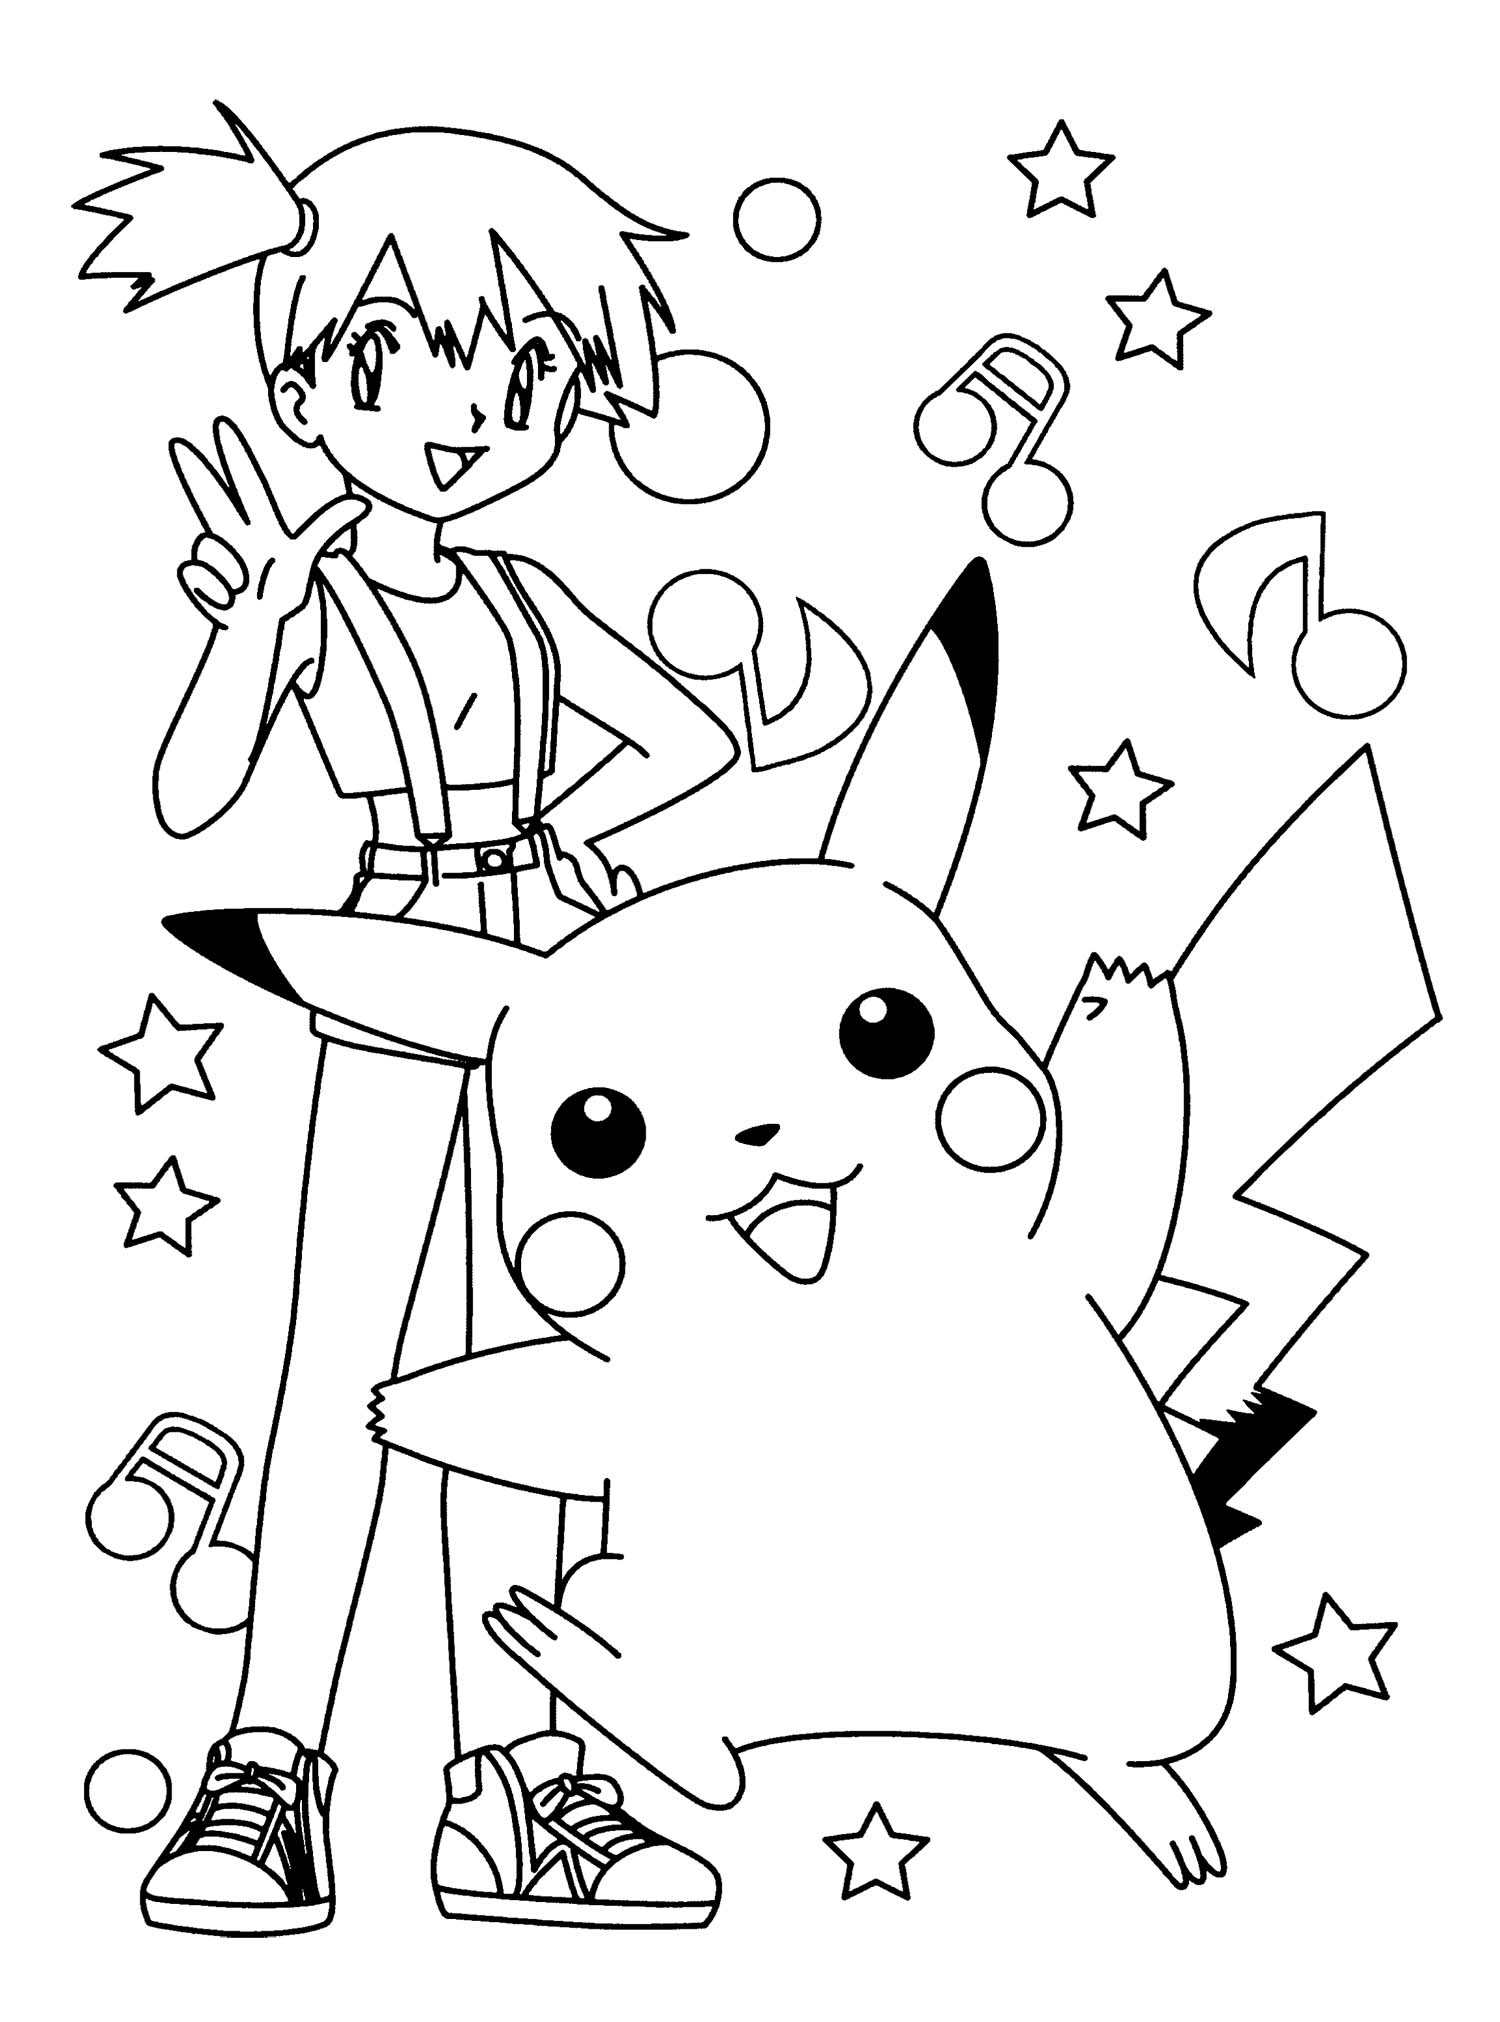 R Pikachu Coloring Pages